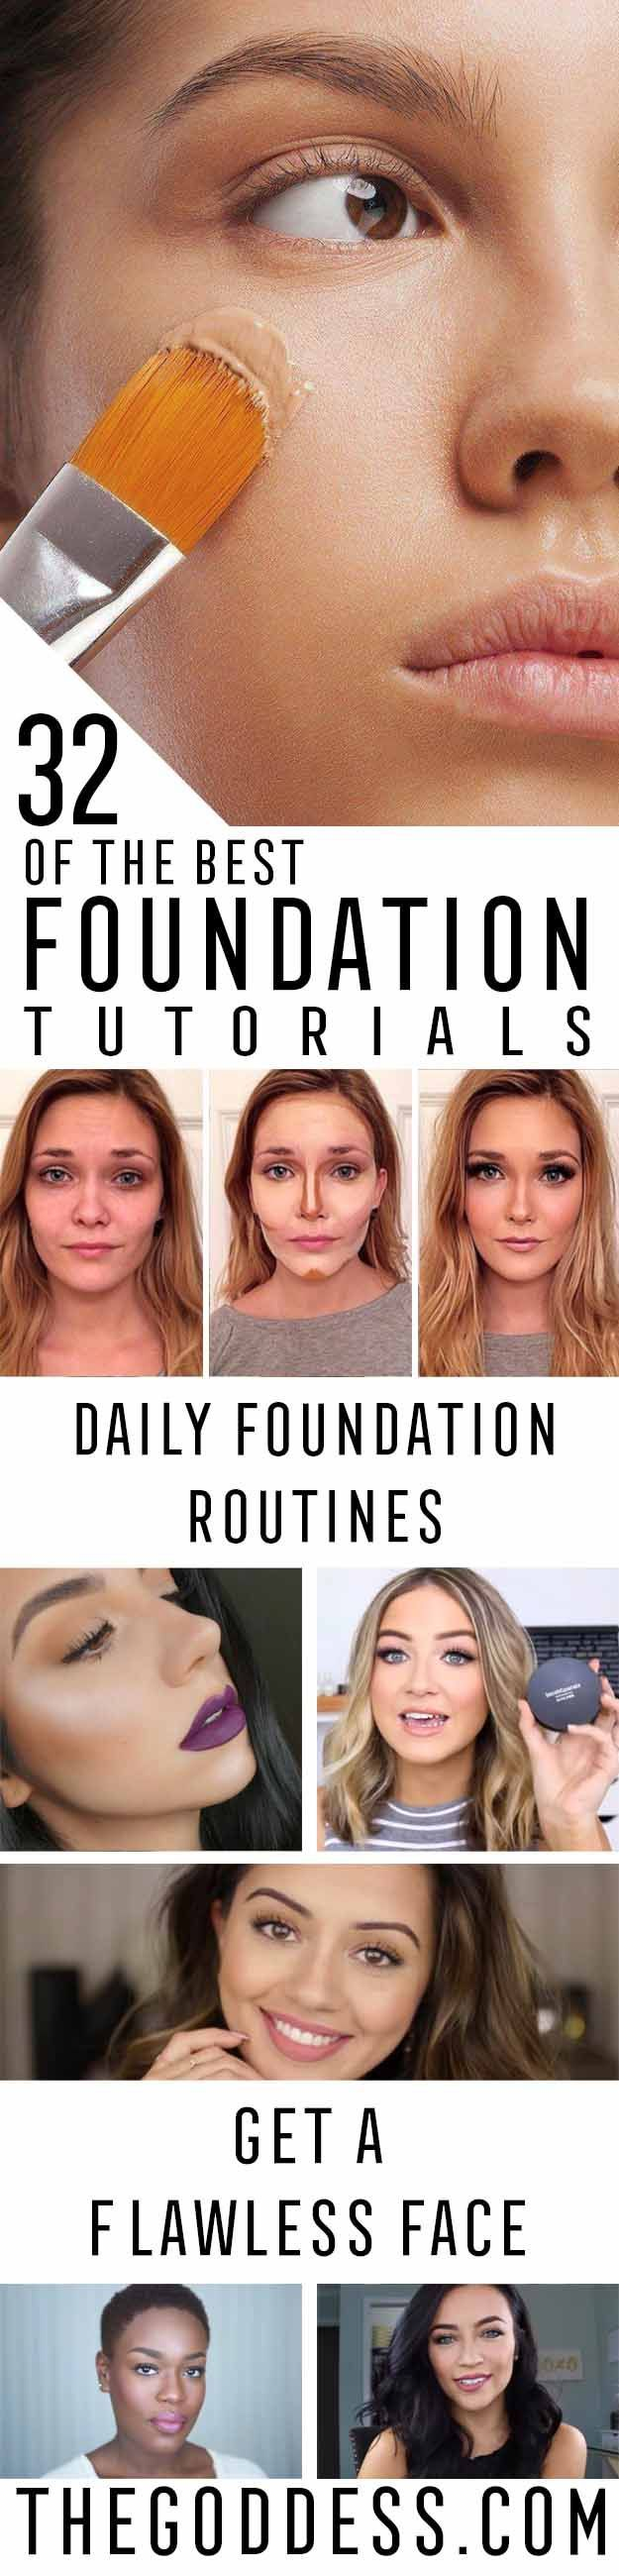 Best Foundation Tutorials - Step By Step Guides For Flawless Natural Skin, Even For Acne and Oily Skin - Check out these Contour Tips and Tricks with Video Guides - All Sorts of Makeup Techniques that Work with Dark Skin or Pale Skin - thegoddess.com/best